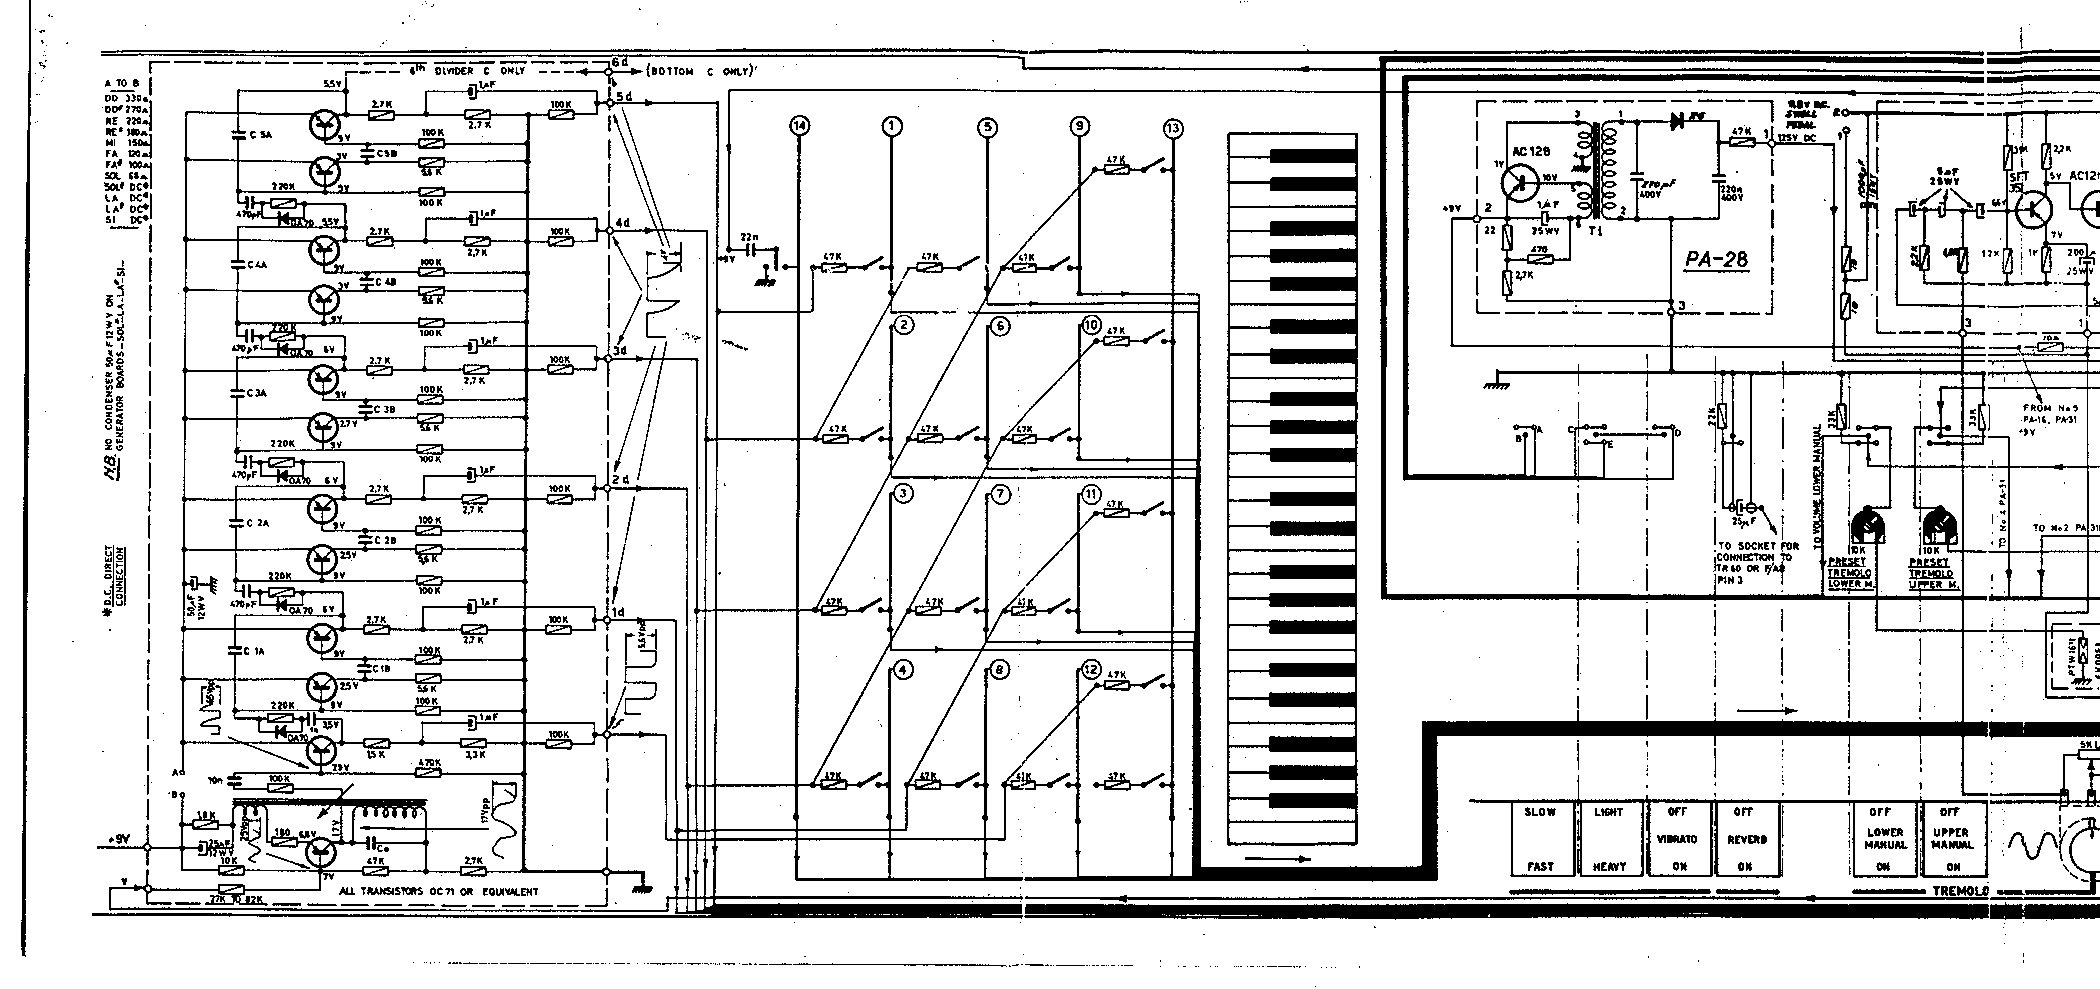 farfisa duo schematic page 1 schematics farfisa org farfisa wiring diagram at panicattacktreatment.co